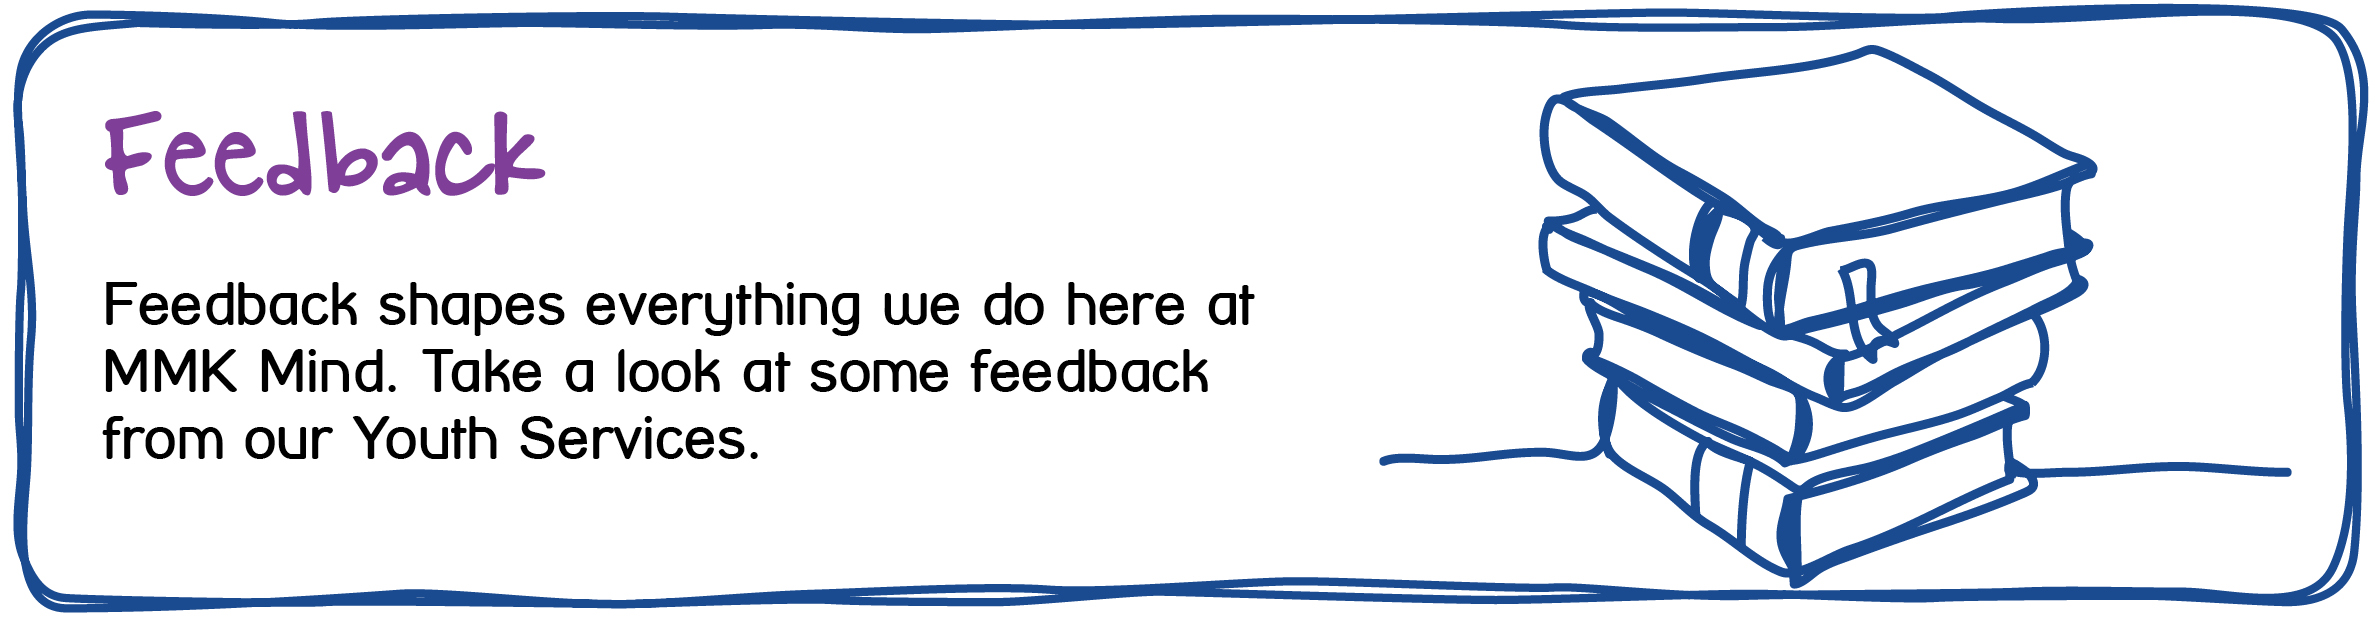 Maidstone and Mid-Kent Mind Youth Provision - Feedback - Feedback from some of our youth services.